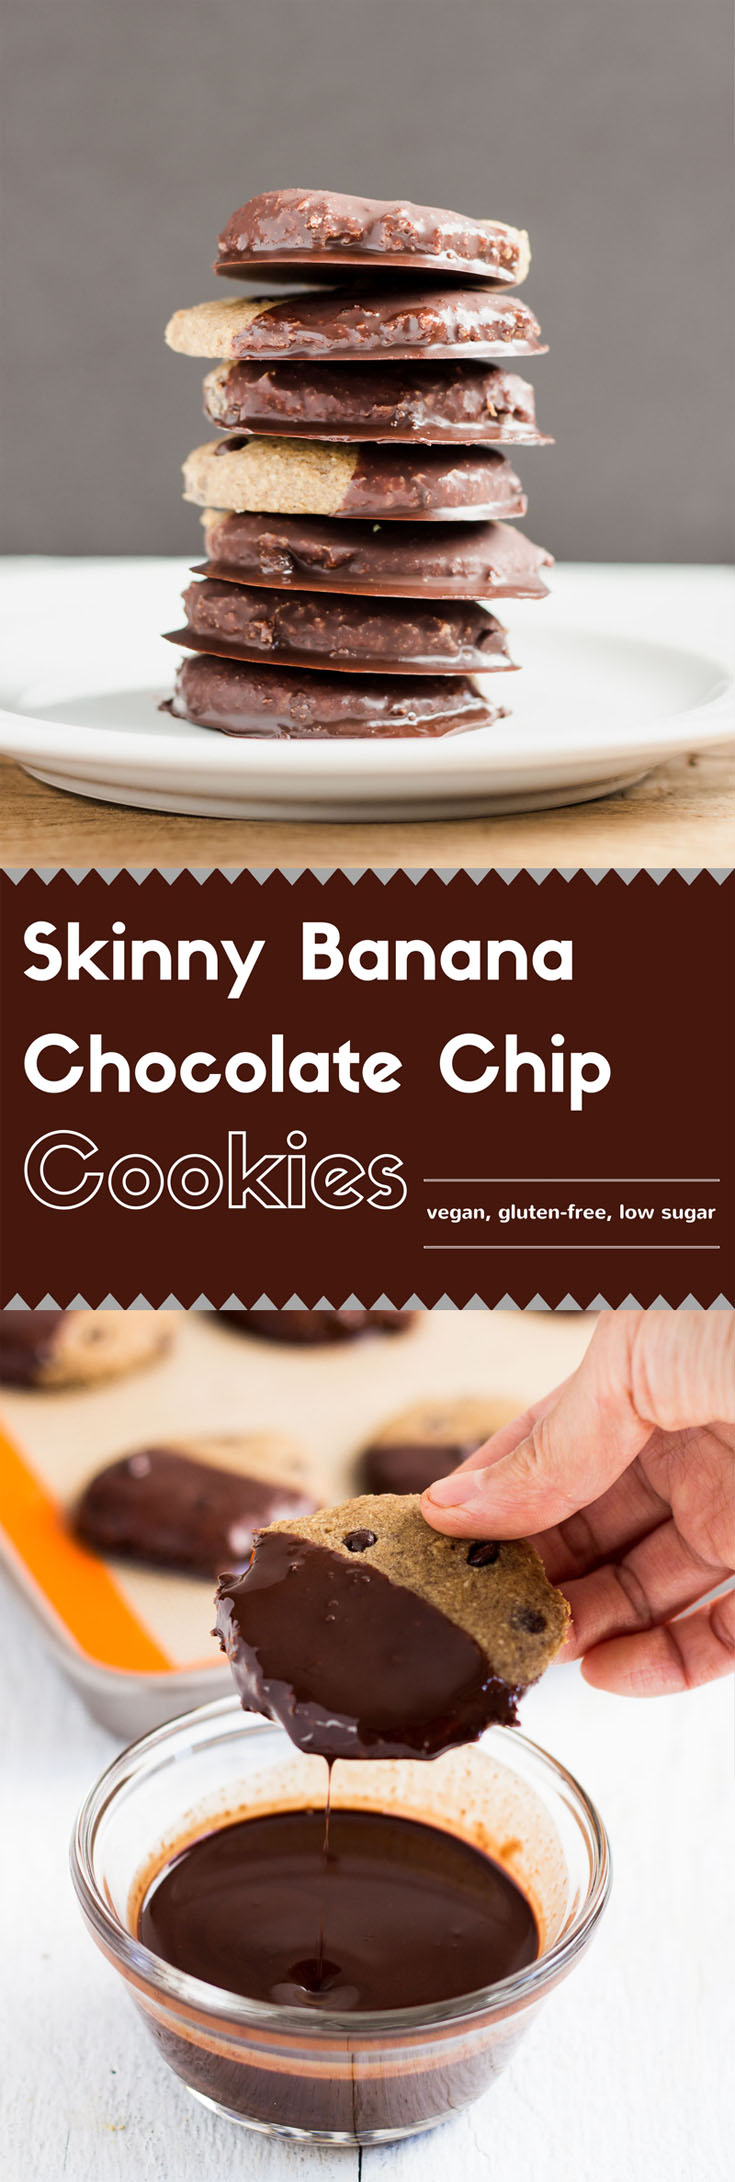 These skinny banana chocolate chip cookies are soft, chewy, and sweet.  The thin sweet chocolate shell adds even more fun and texture to the cookies.